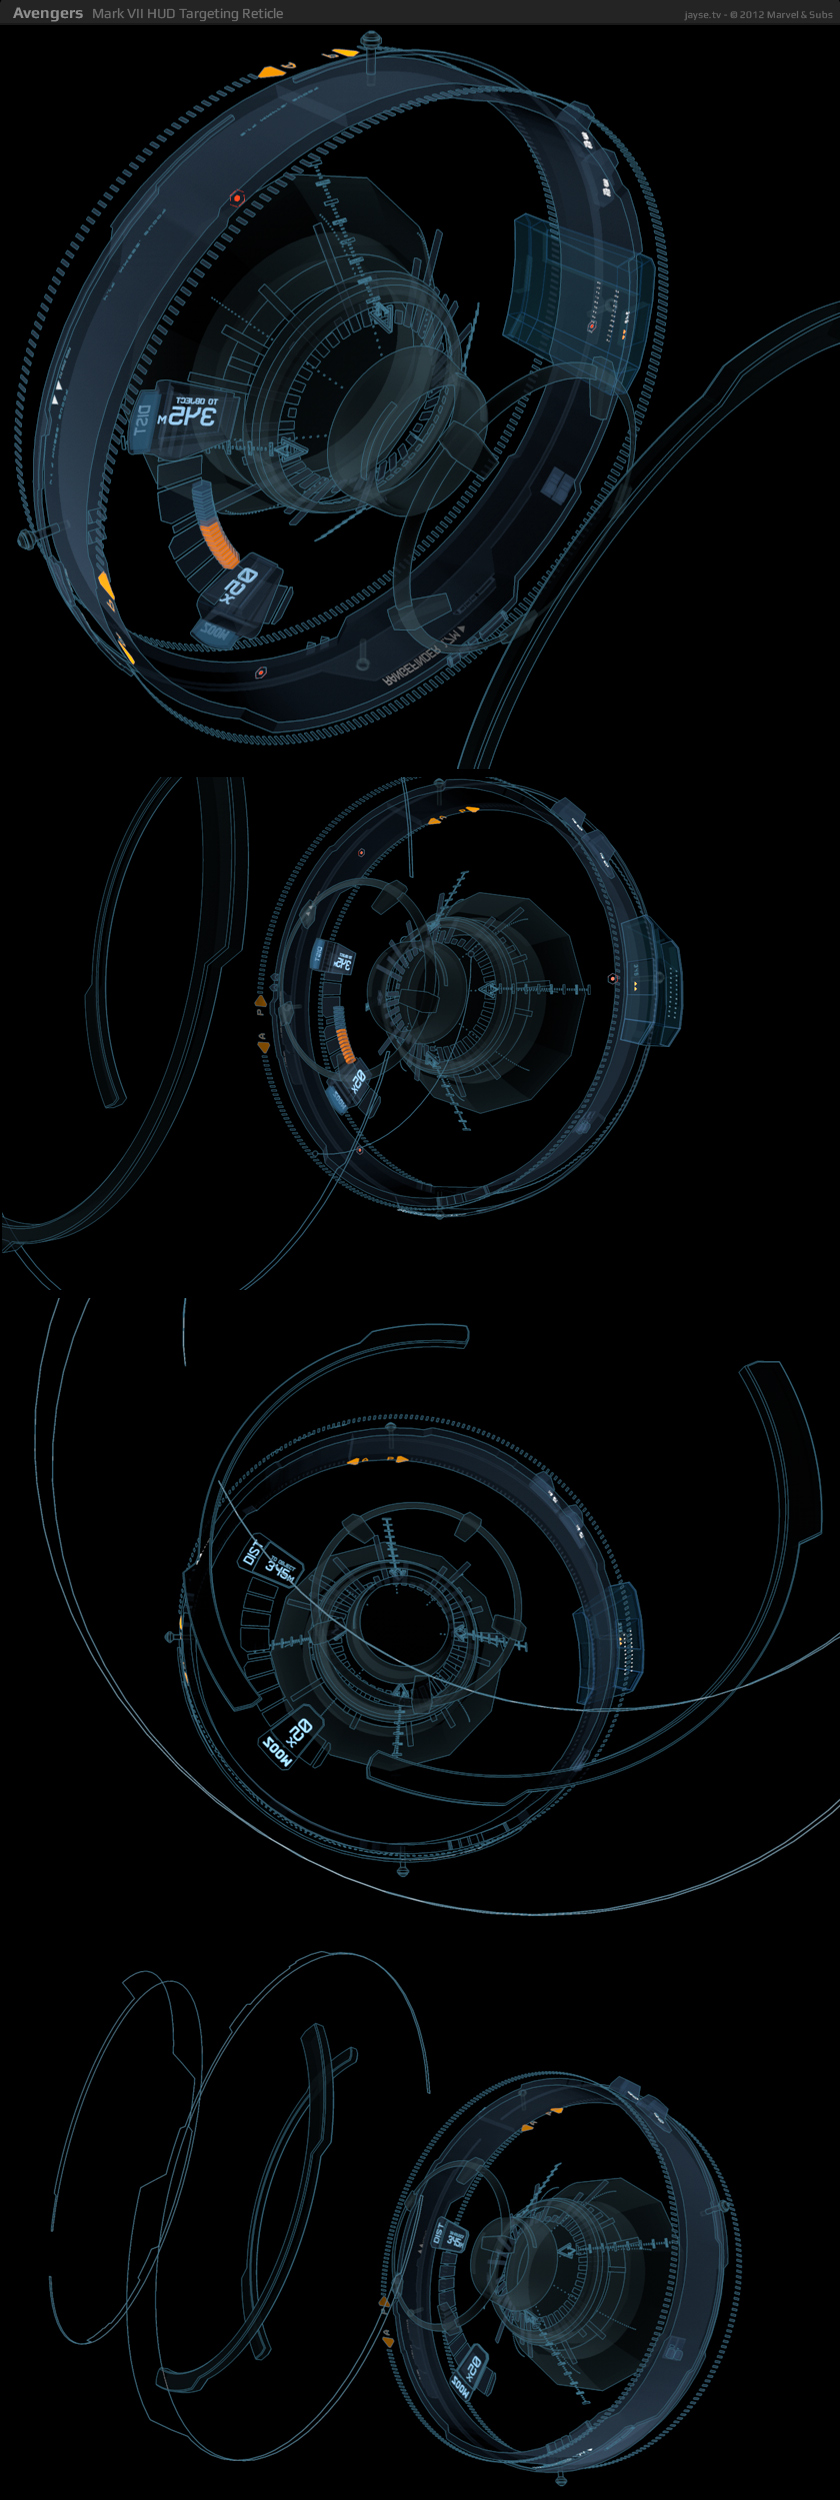 IronMan_Mark_7_HUD_reticle_03_jayse_hansen